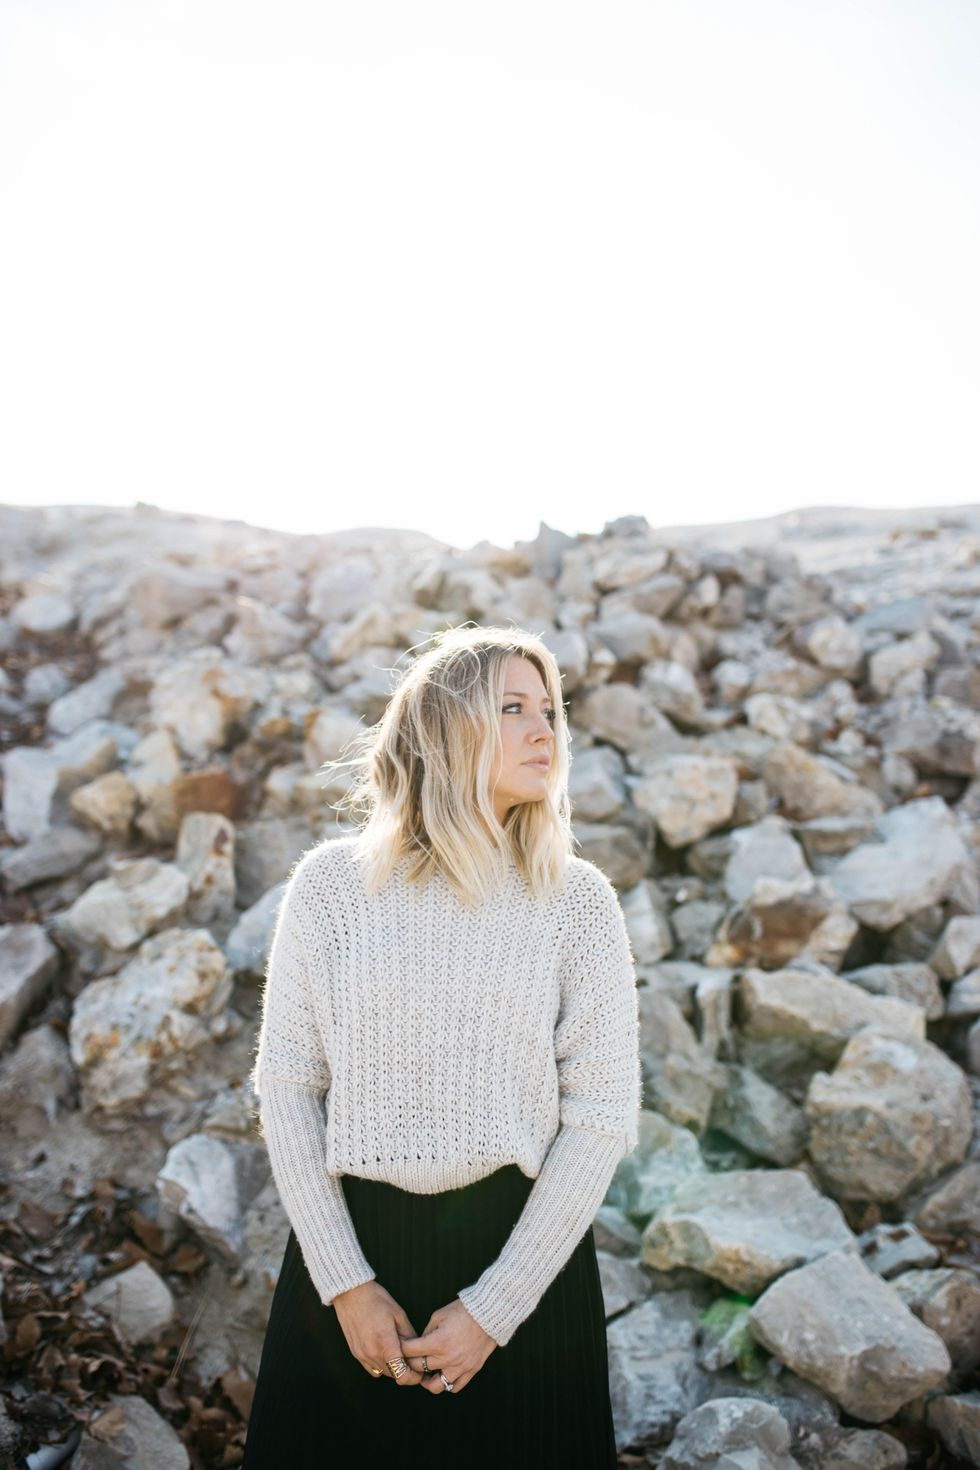 5 Simple Ways To Give Yourself Grace, Especially When Life Gets Hard